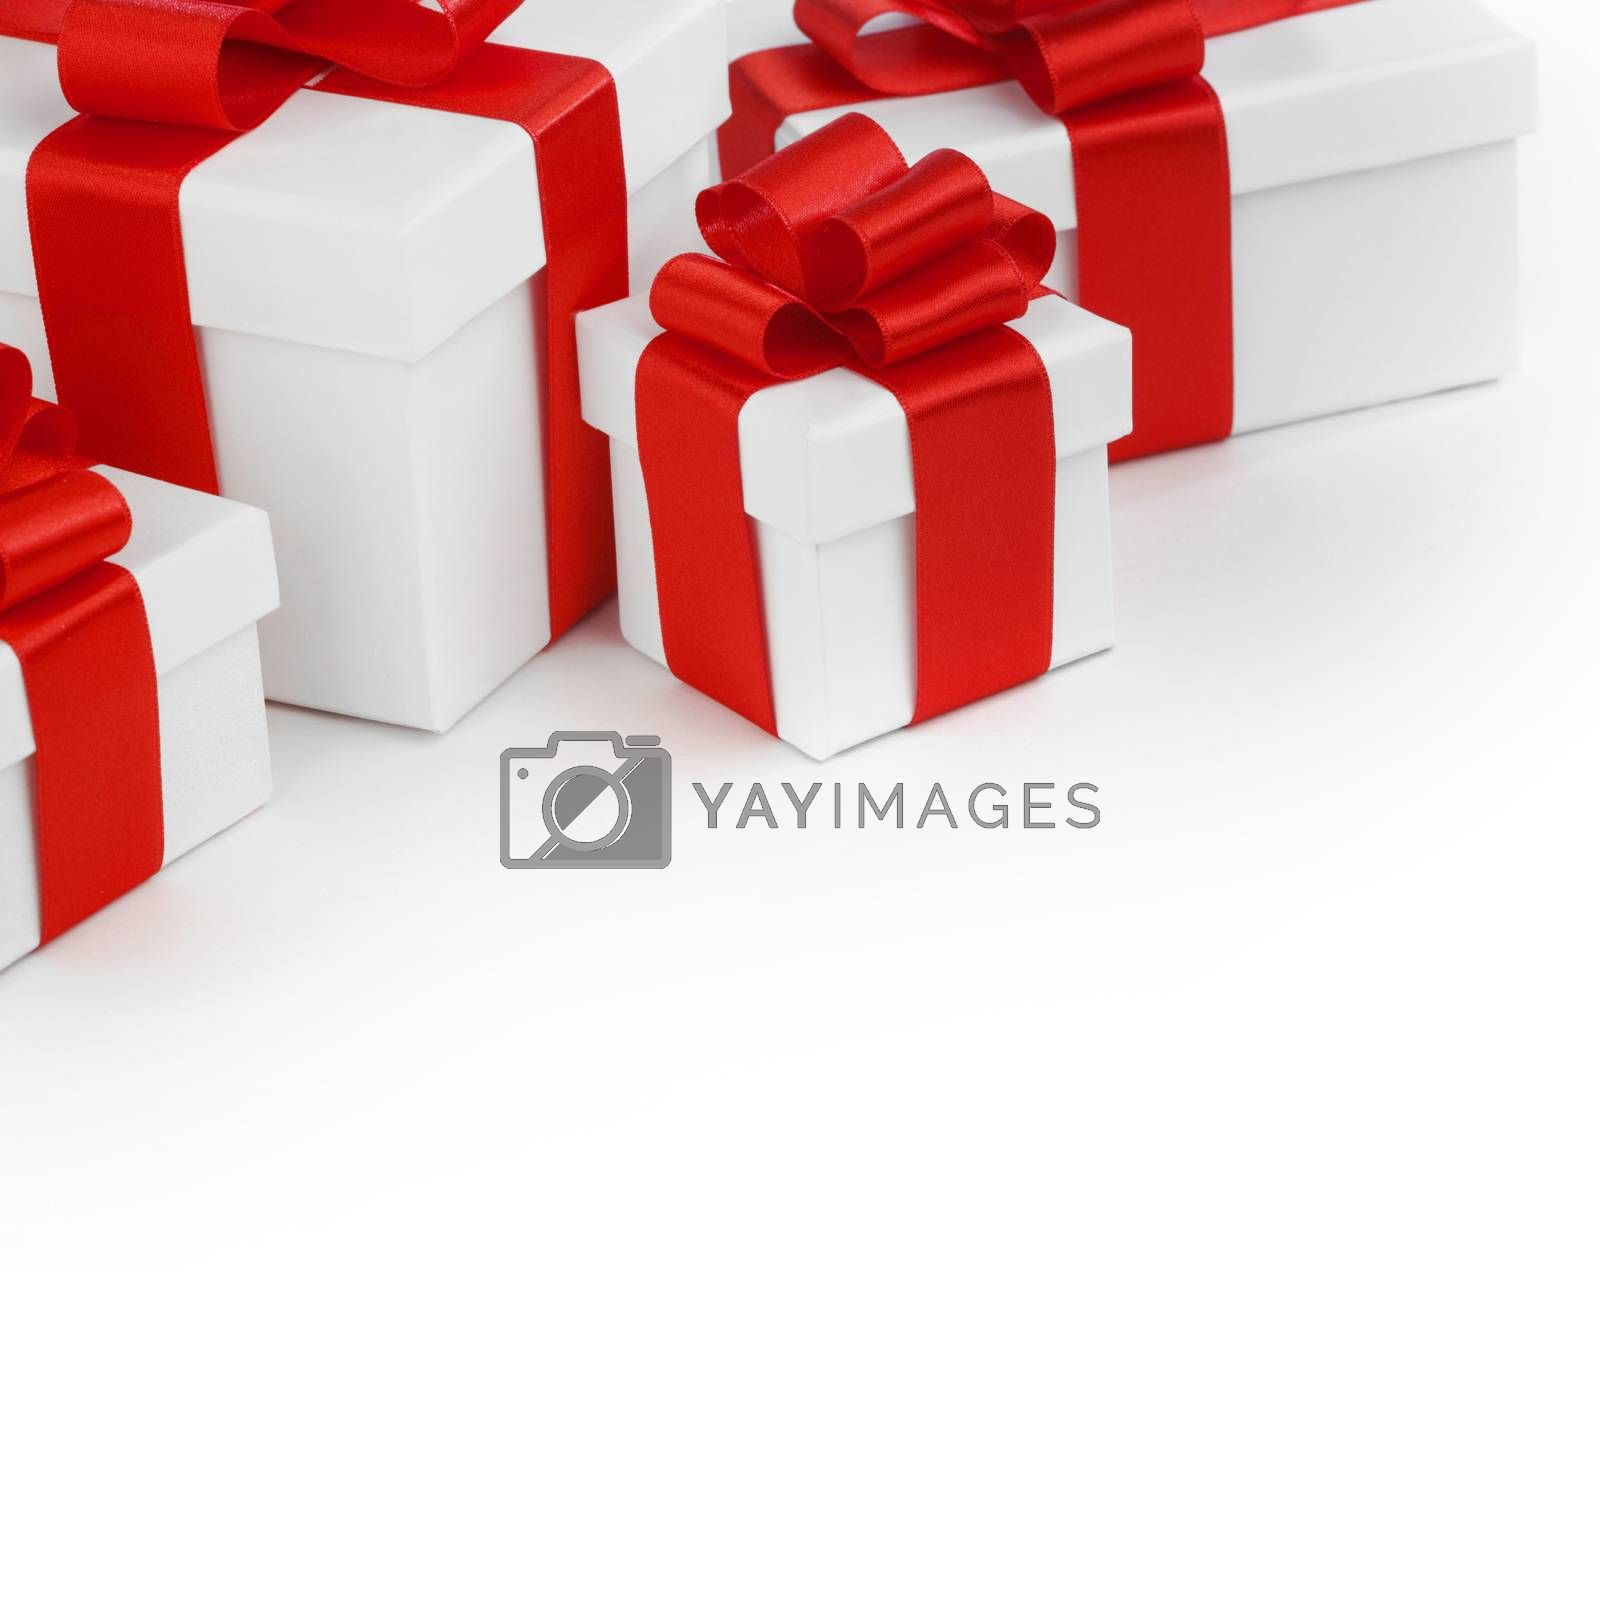 Royalty free image of White gift boxes with red ribbons by Yellowj